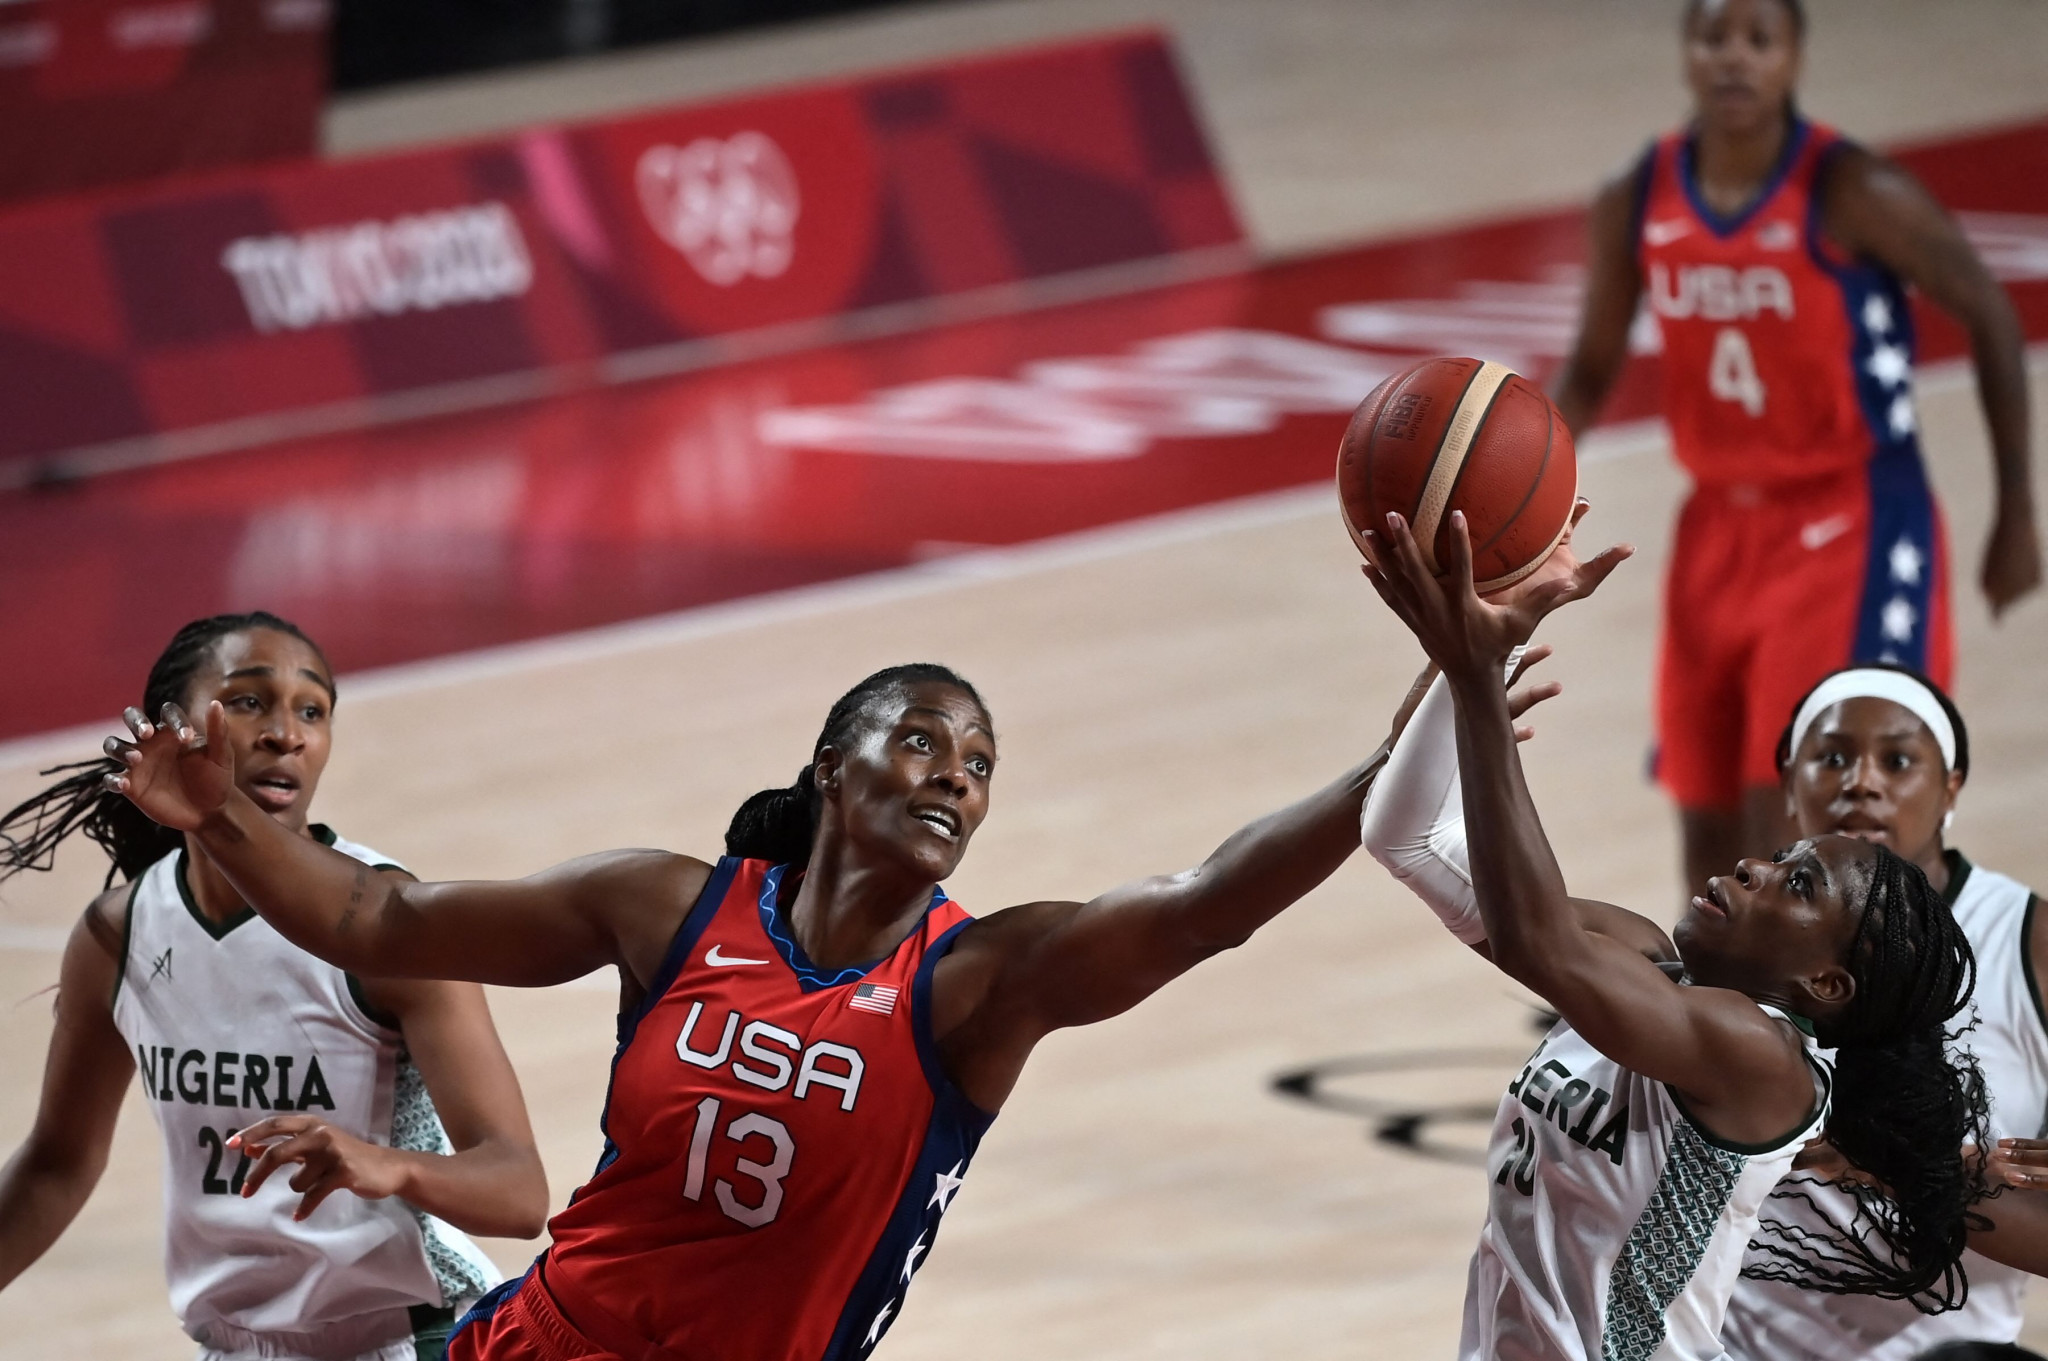 Both the men's and women's Nigerian basketball teams exited the Olympics at the group stage ©Getty Images